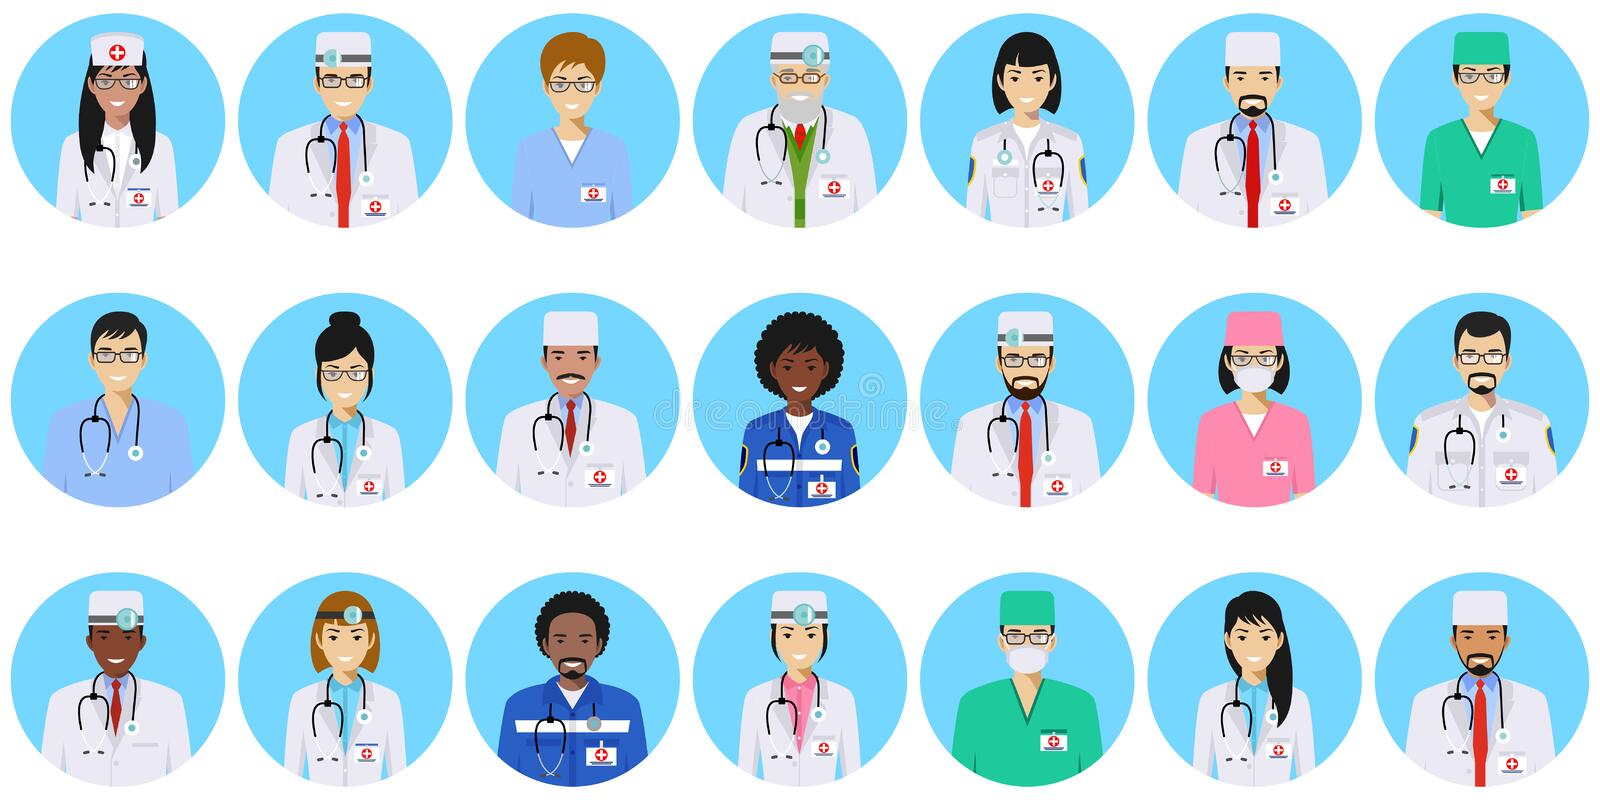 Medical concept. Different doctors, nurses characters avatars icons set in flat style isolated on blue background. Medical concept. Set of colorful medical staff vector illustration